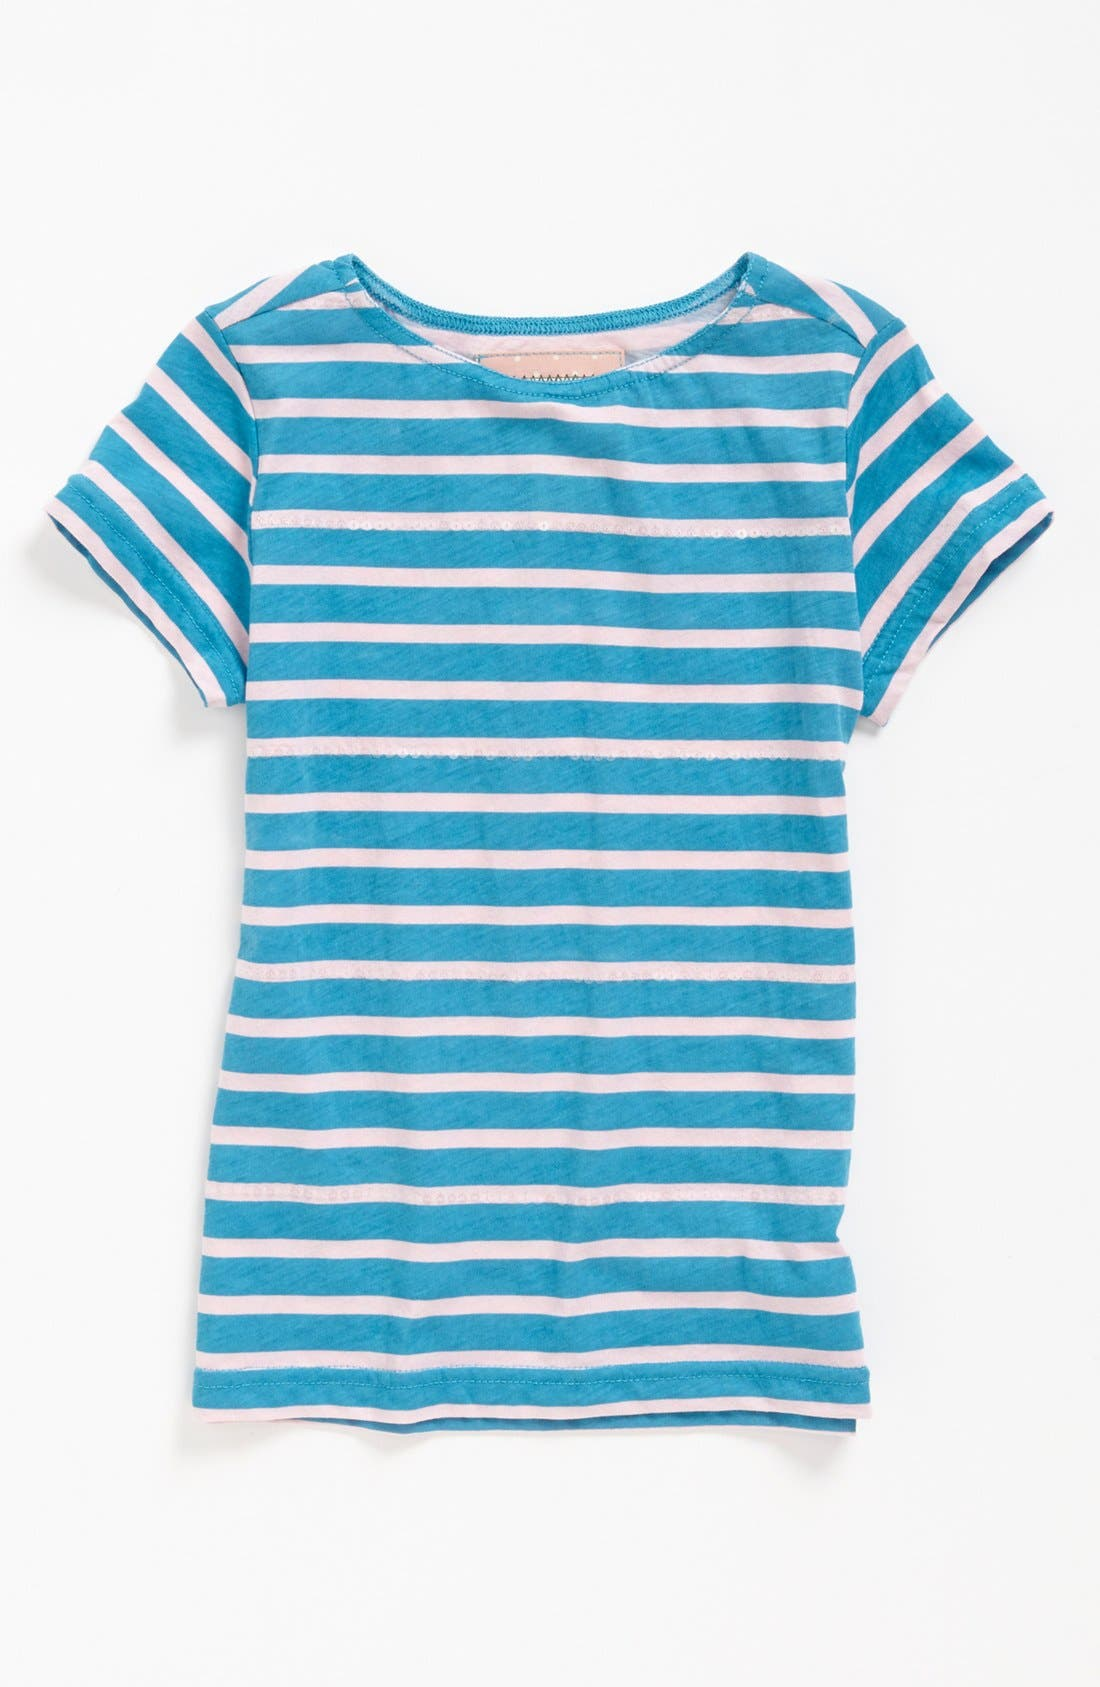 Alternate Image 1 Selected - Penny Candy Sequin Stripe Tee (Little Girls & Big Girls)